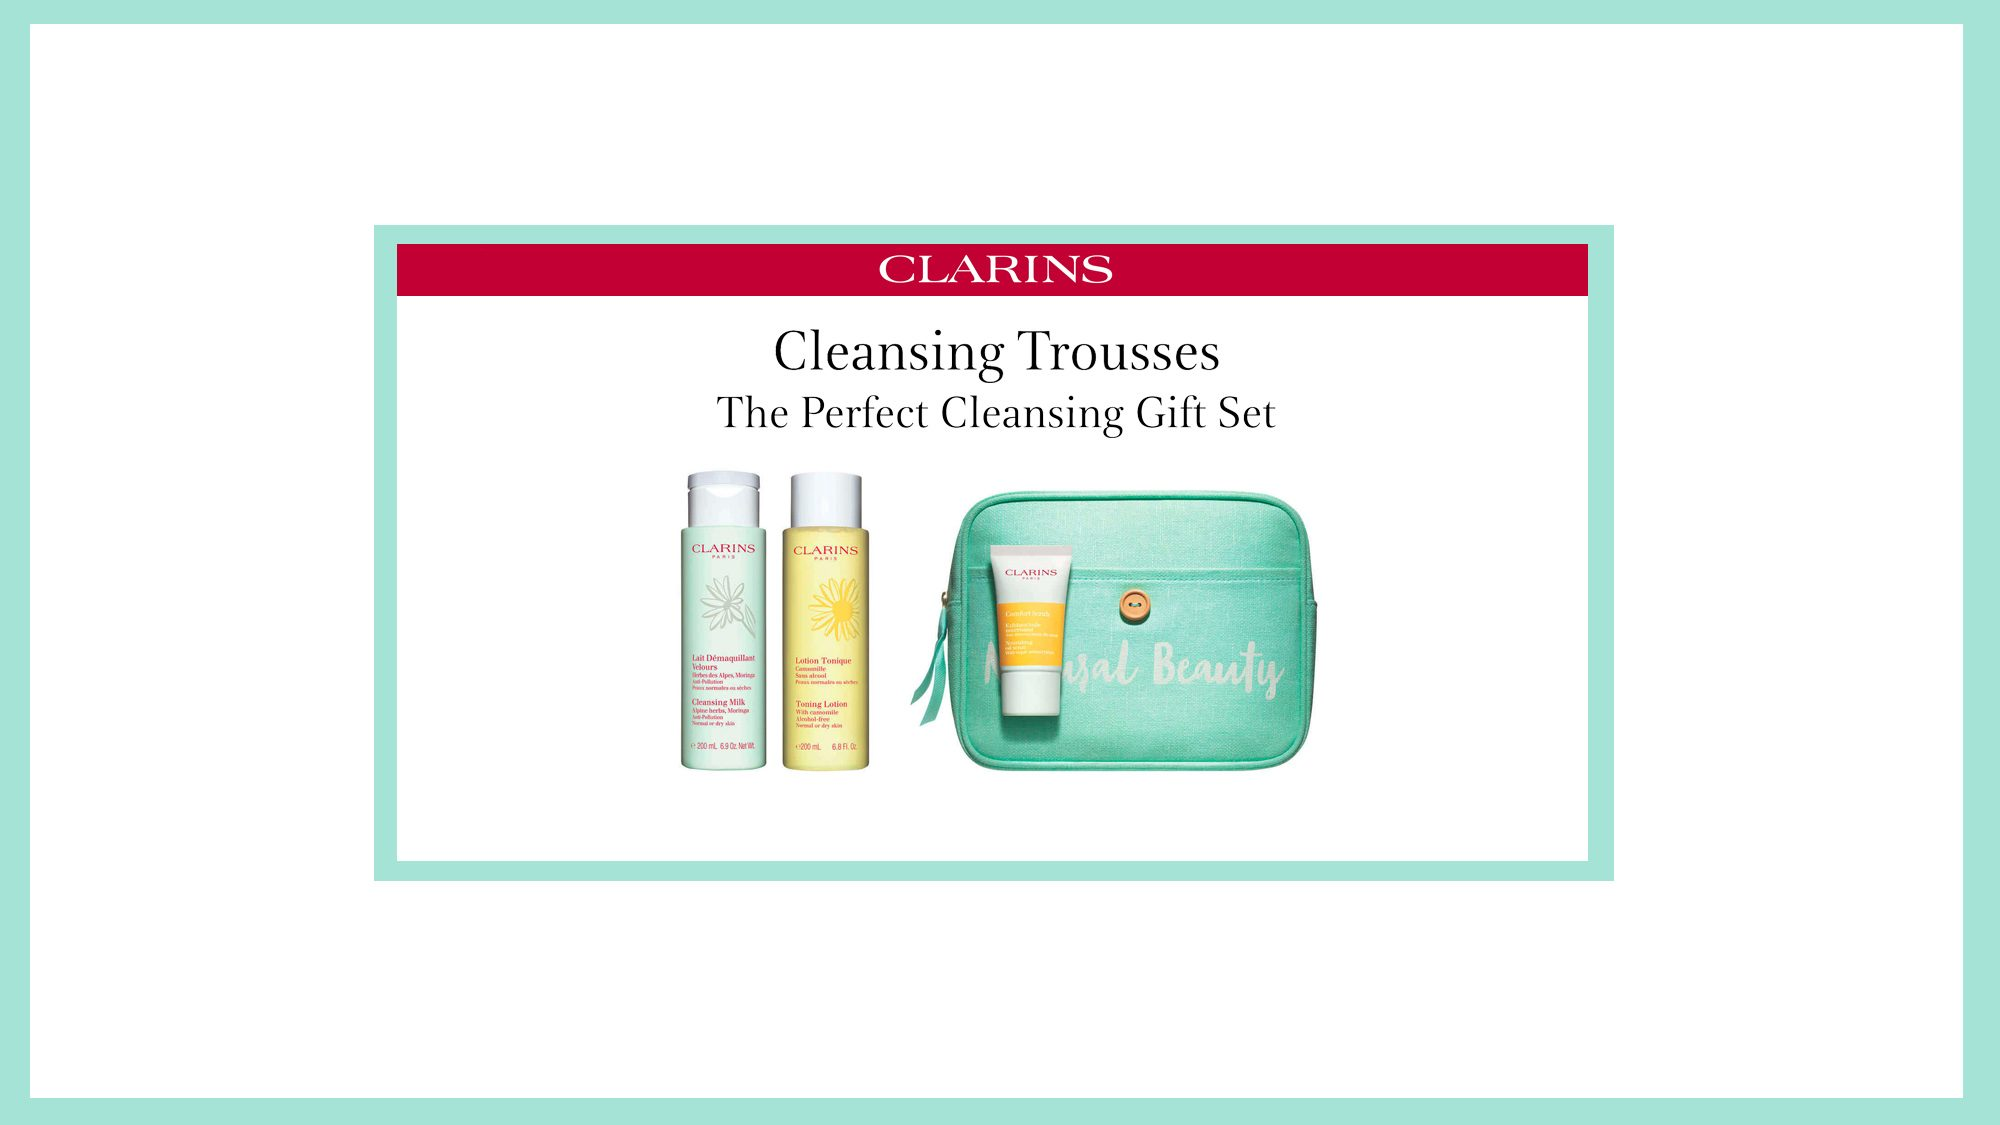 Clarins Cleaning Trousses Banner 2020